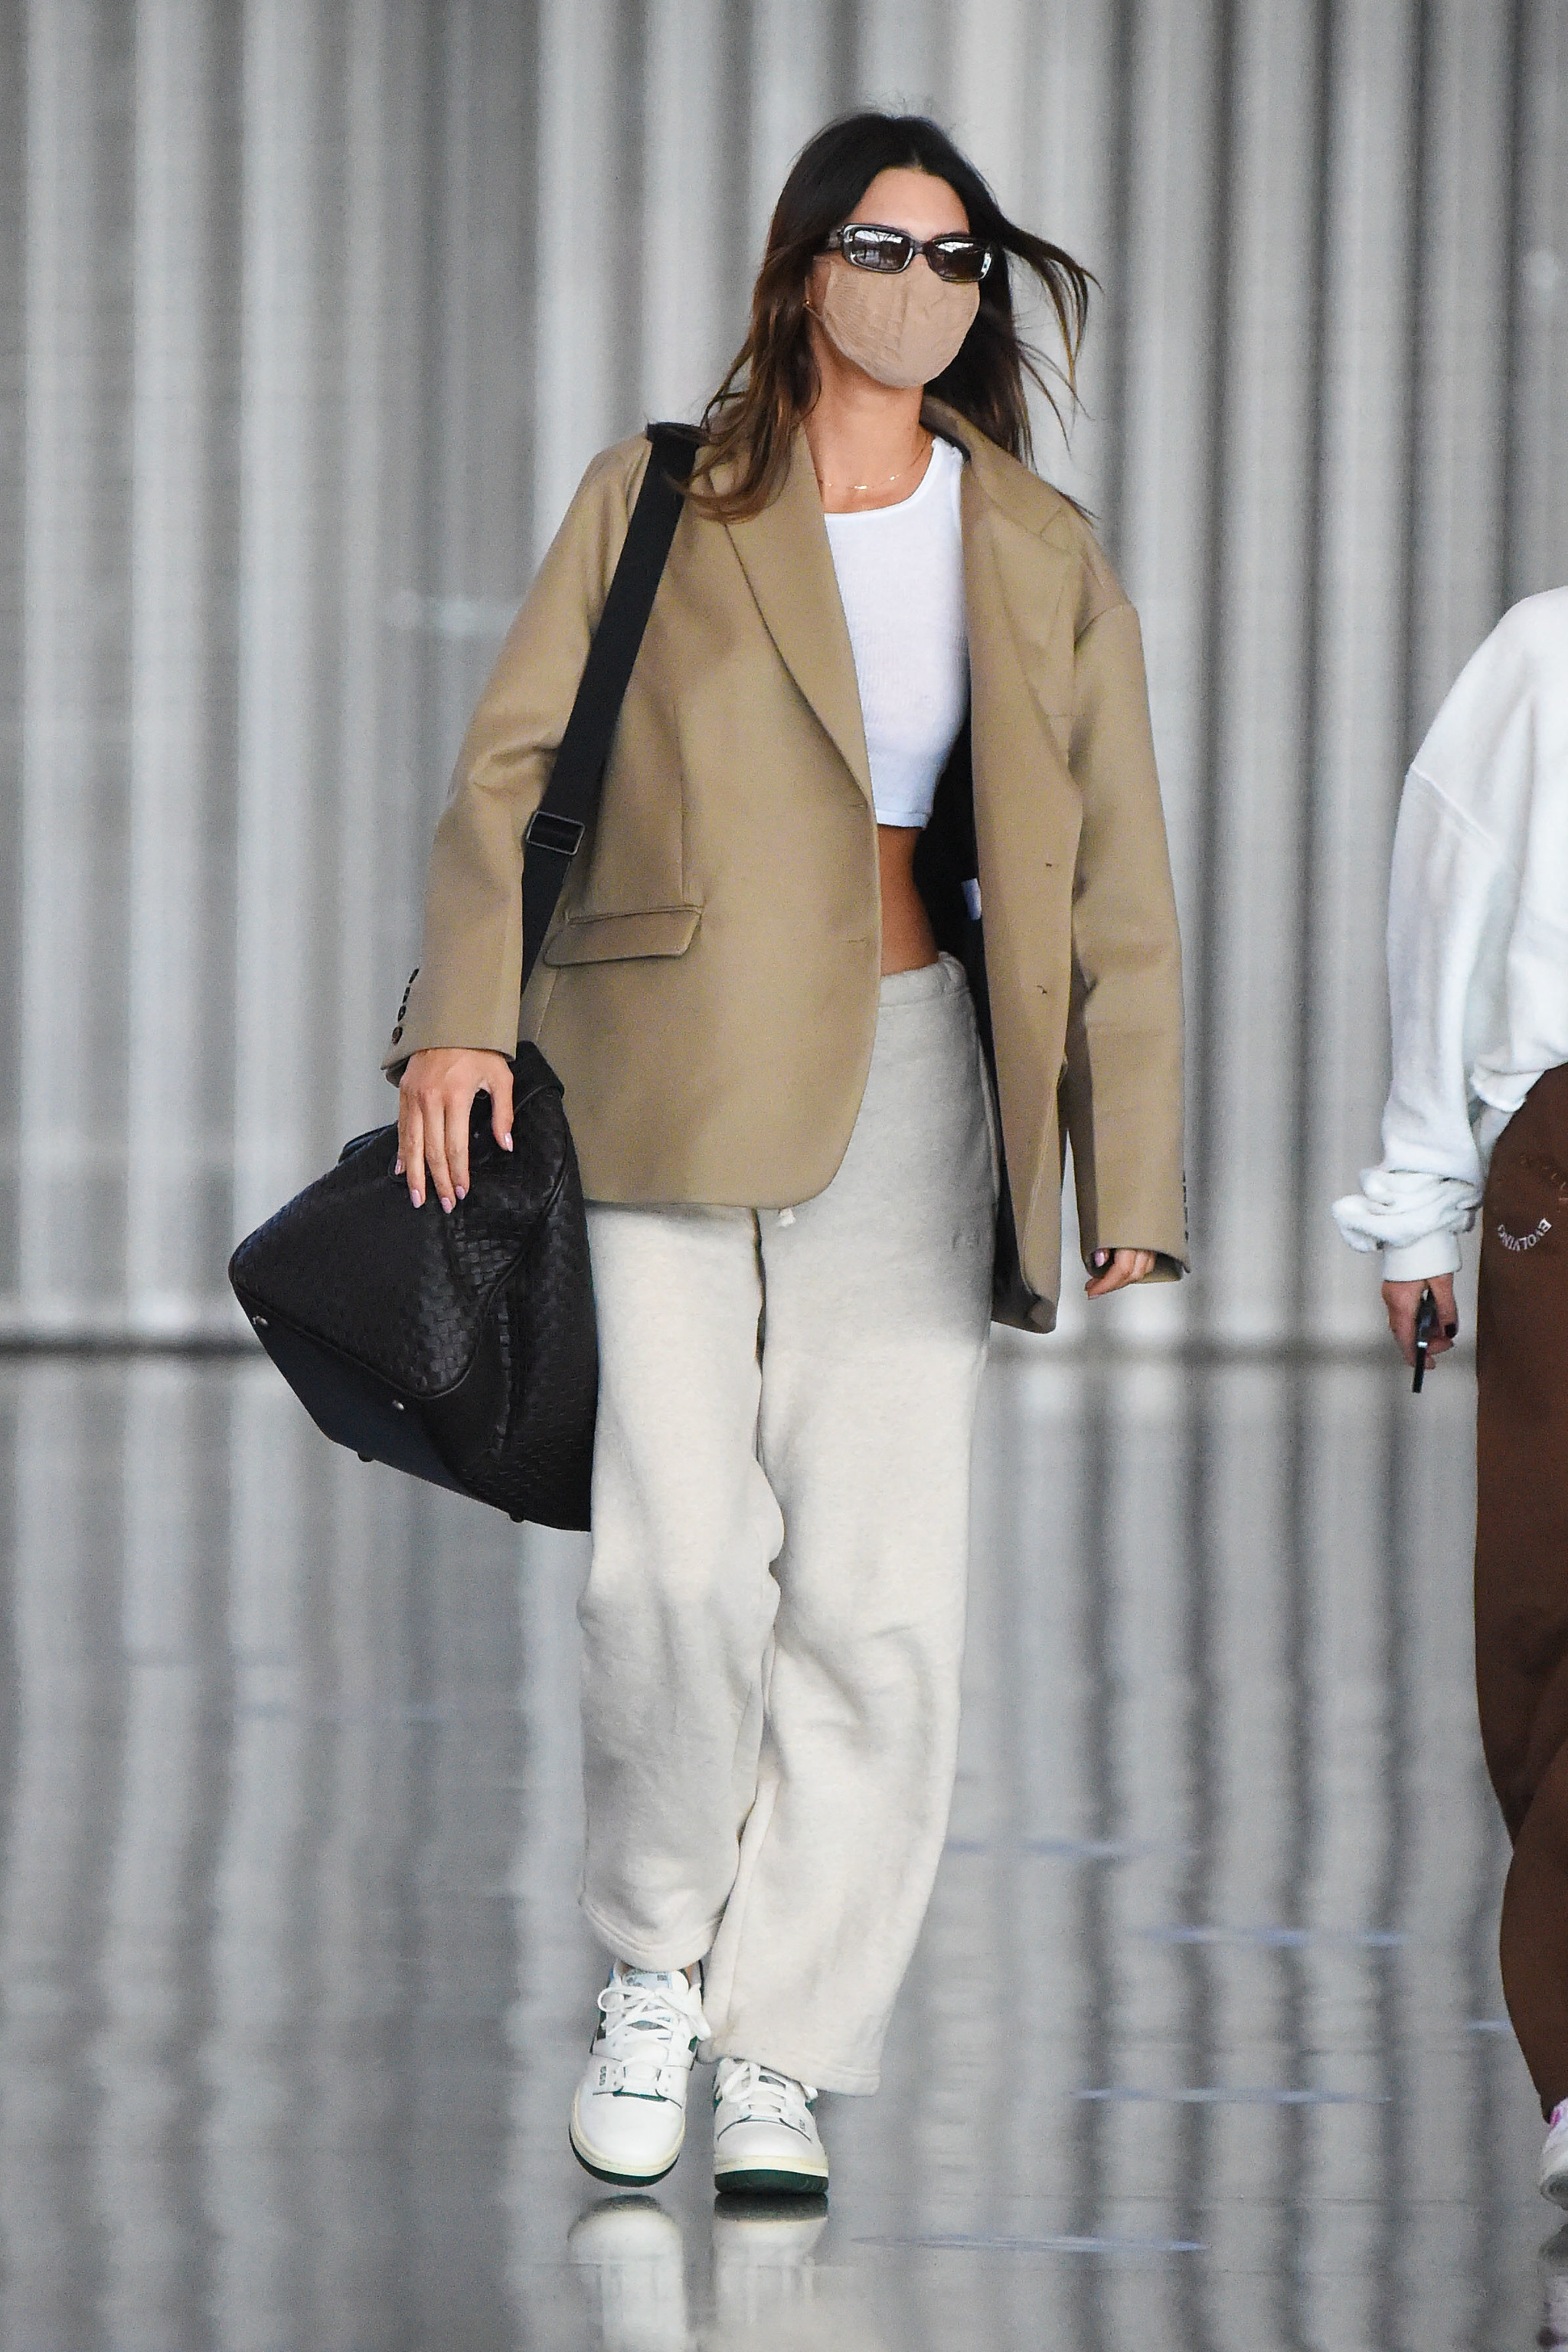 Kendall Jenner con joggers y blazers.